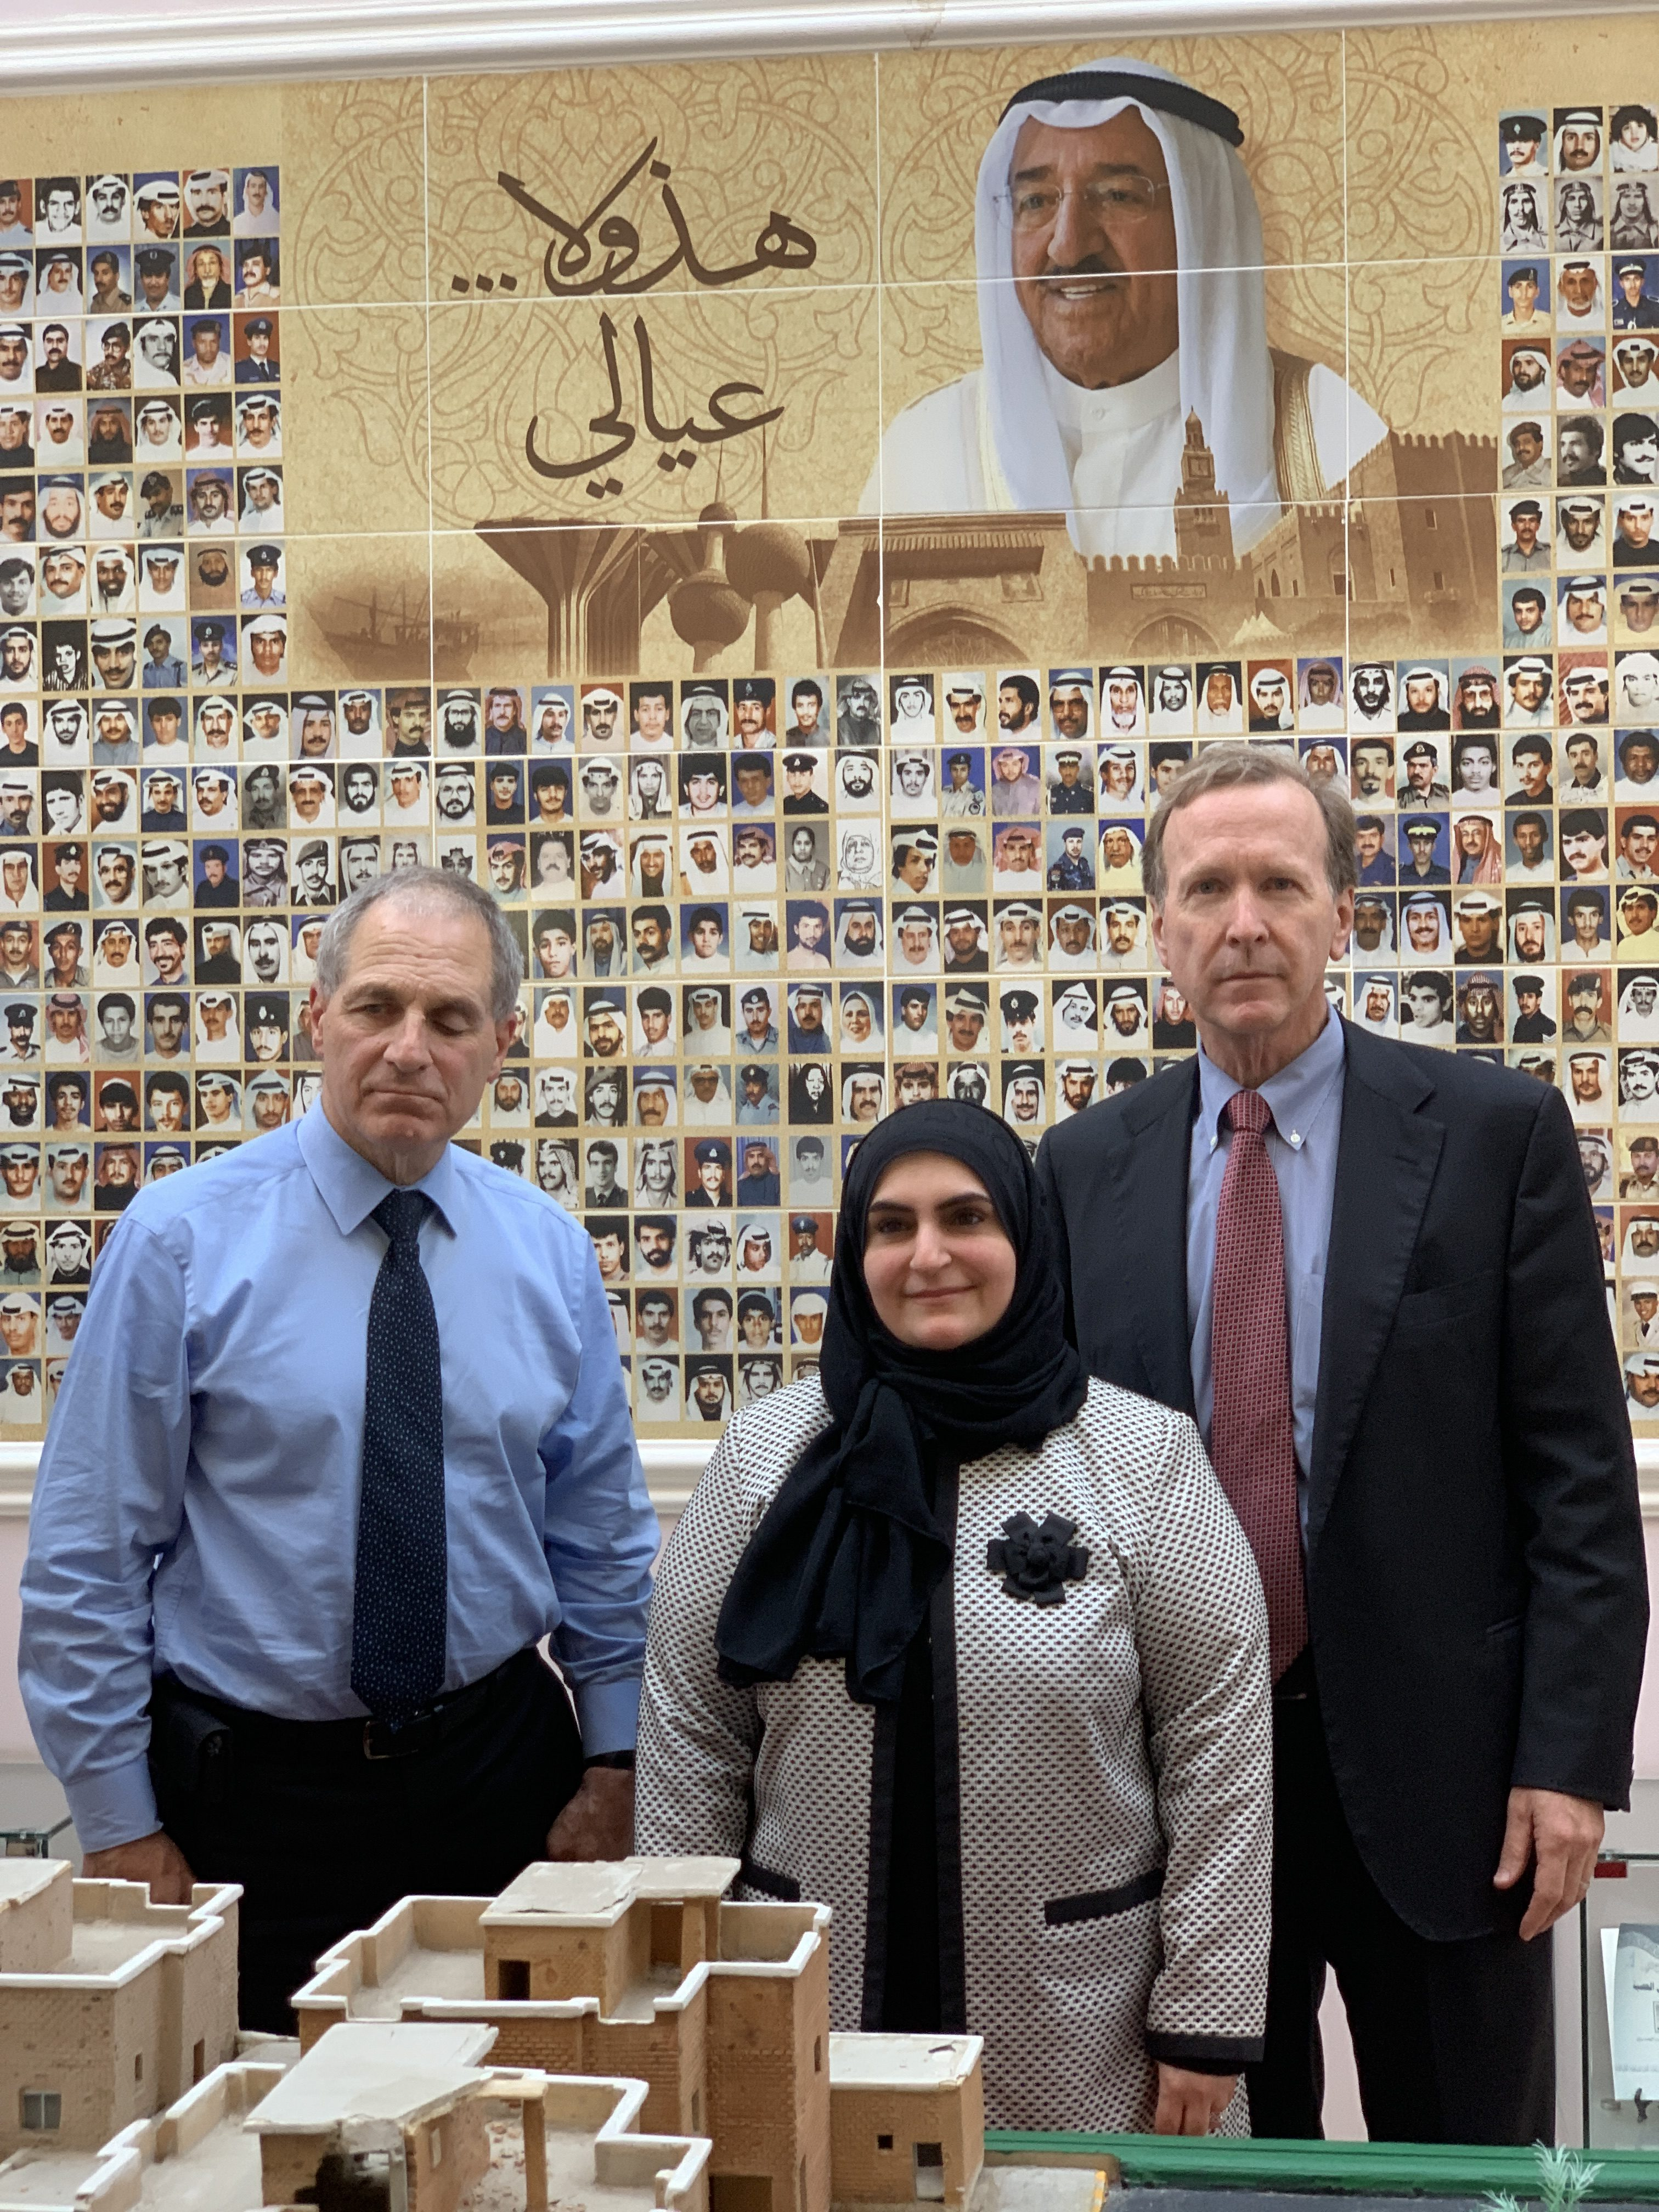 Ex-FBI Director Louis Freeh (L) and Neil Bush (R) visit the Al Qurain Martyrs Museum, a memorial to the Kuwait resistance to the Iraq invasion, on March 23, 2019. Courtesy KGL Investment